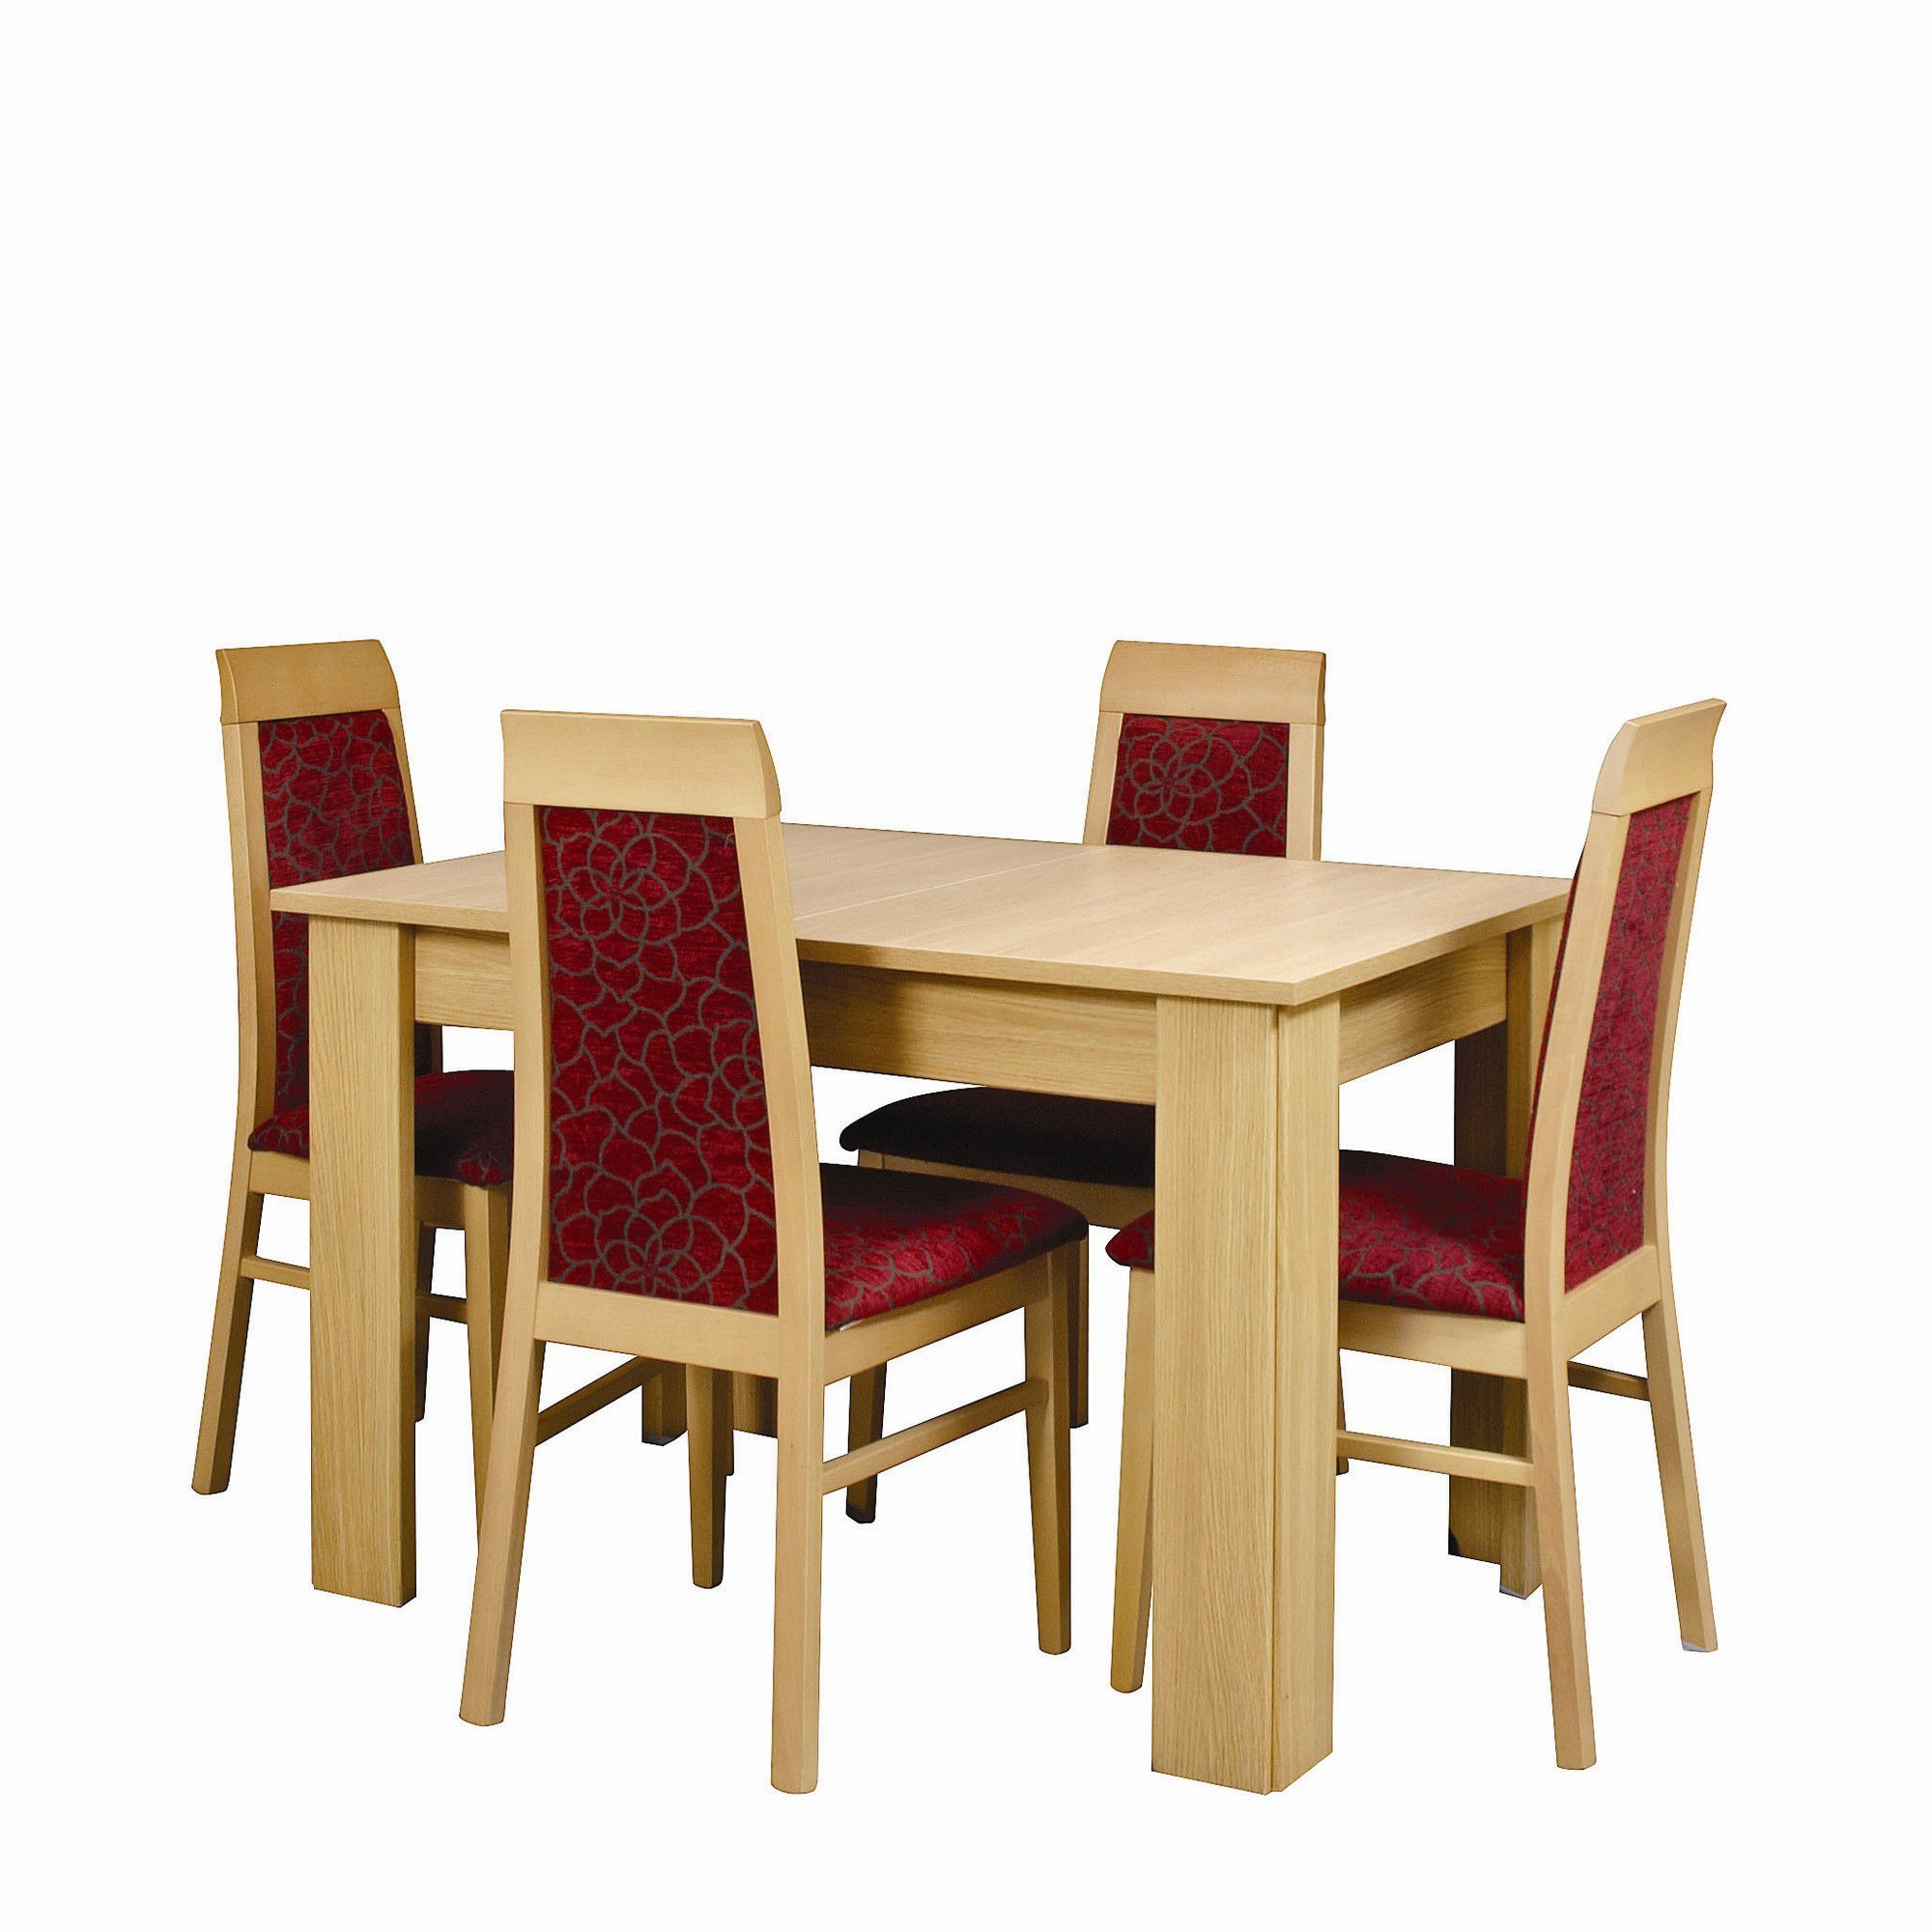 Other Caxton Huxley 4 Leg Compact Extending Dining Table with 4 Chairs in Light Oak